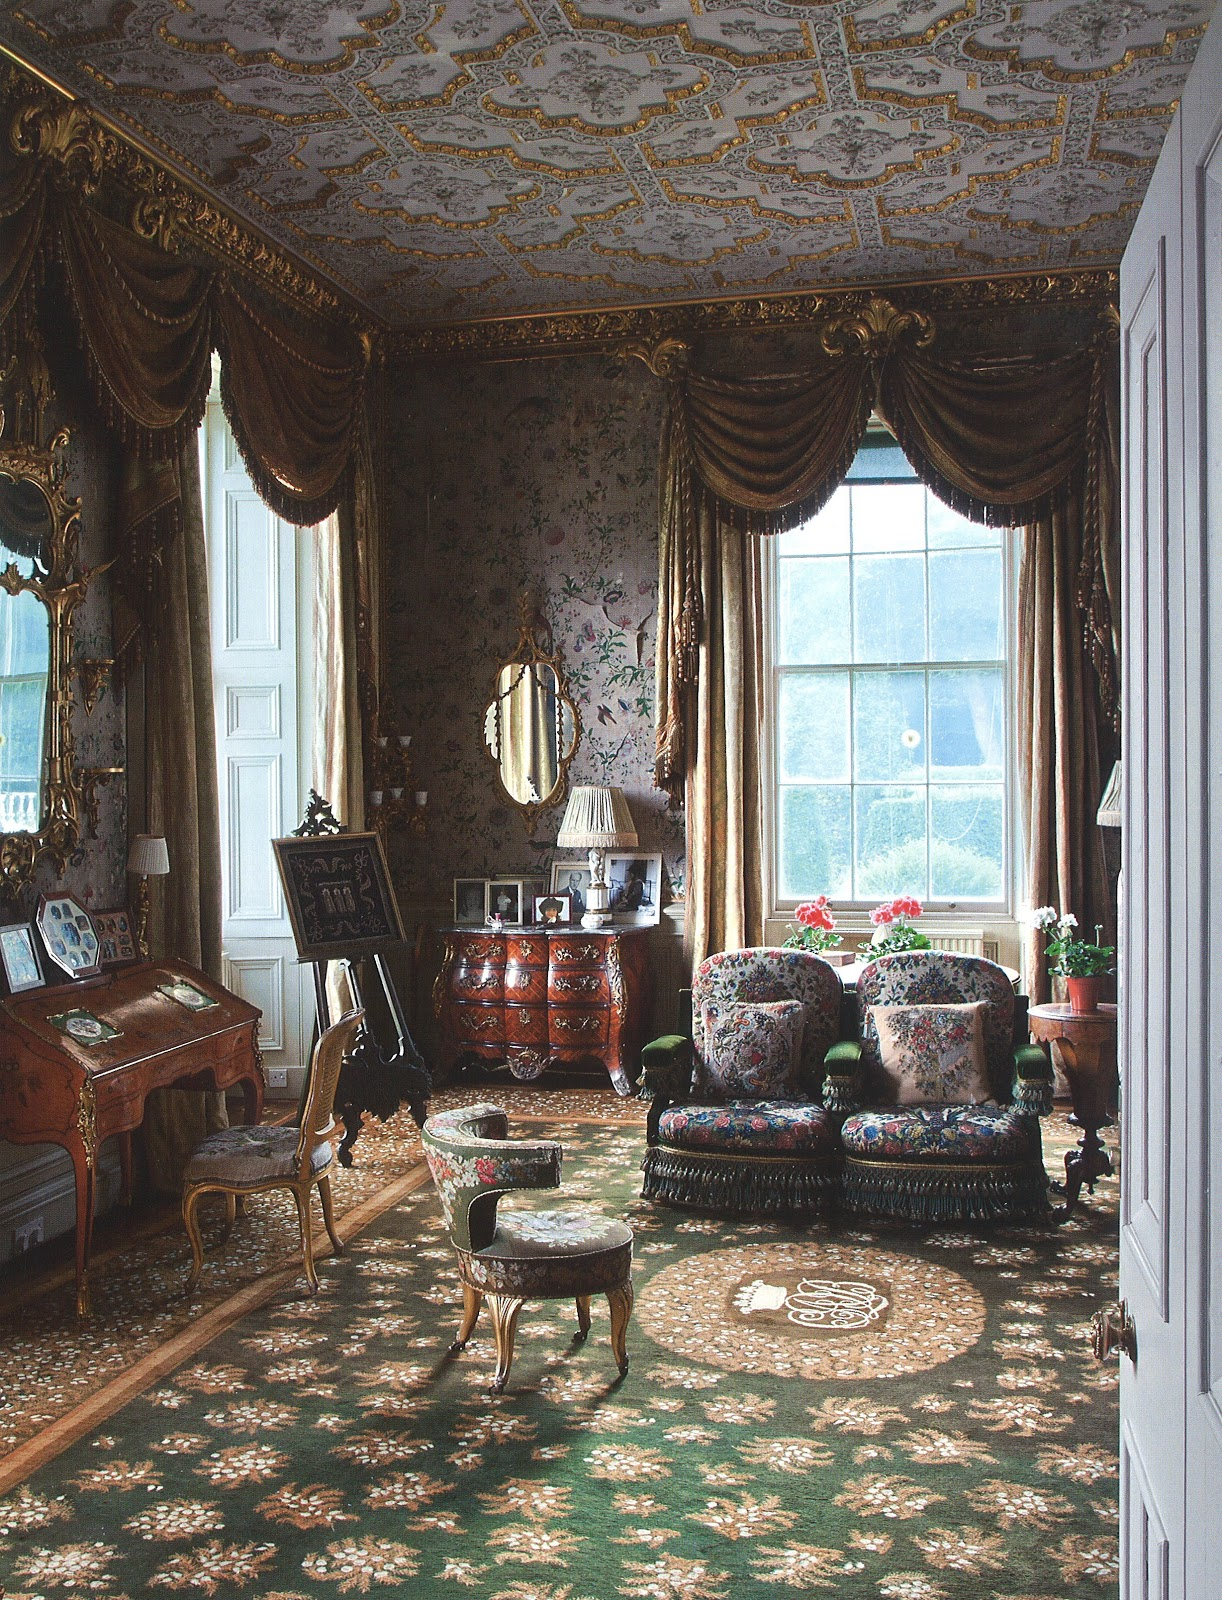 Scottish Country House Interior